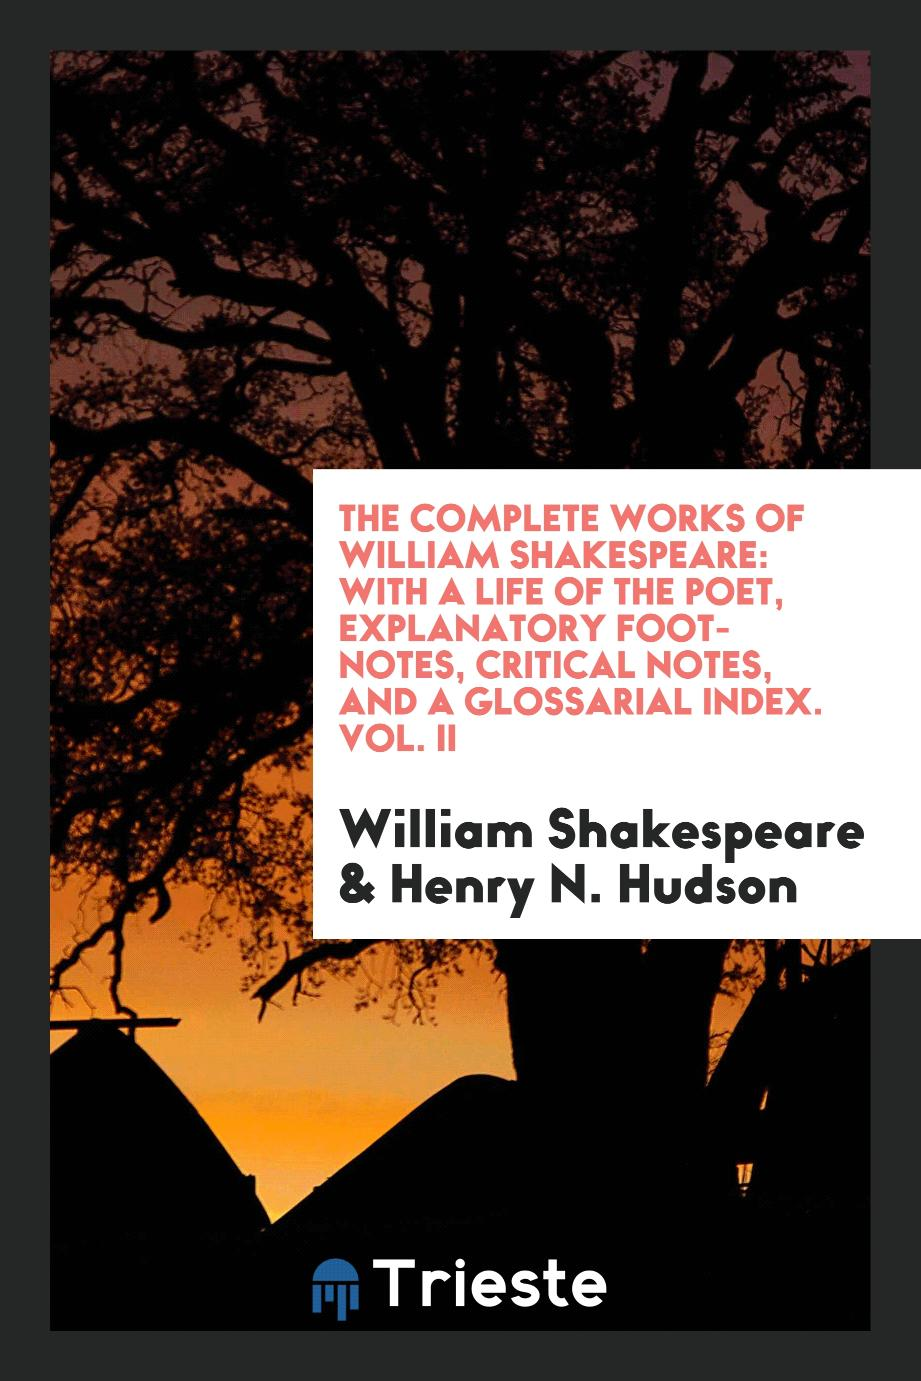 The complete works of William Shakespeare: with a life of the poet, explanatory foot-notes, critical notes, and a glossarial index. Vol. II